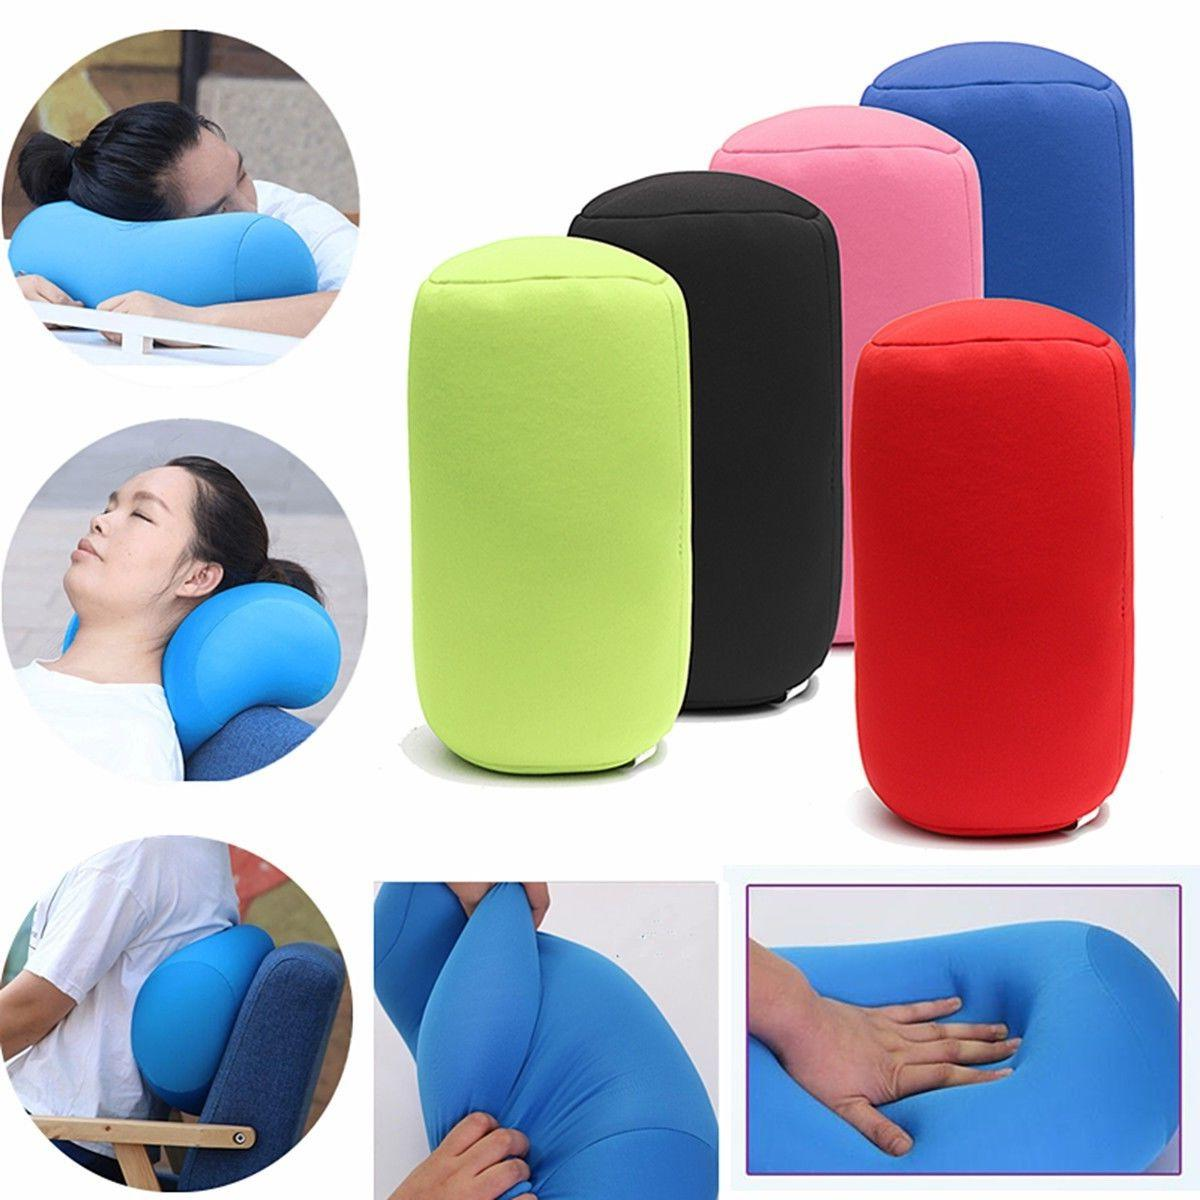 New Office Seat Cushion Roll Tube Pain